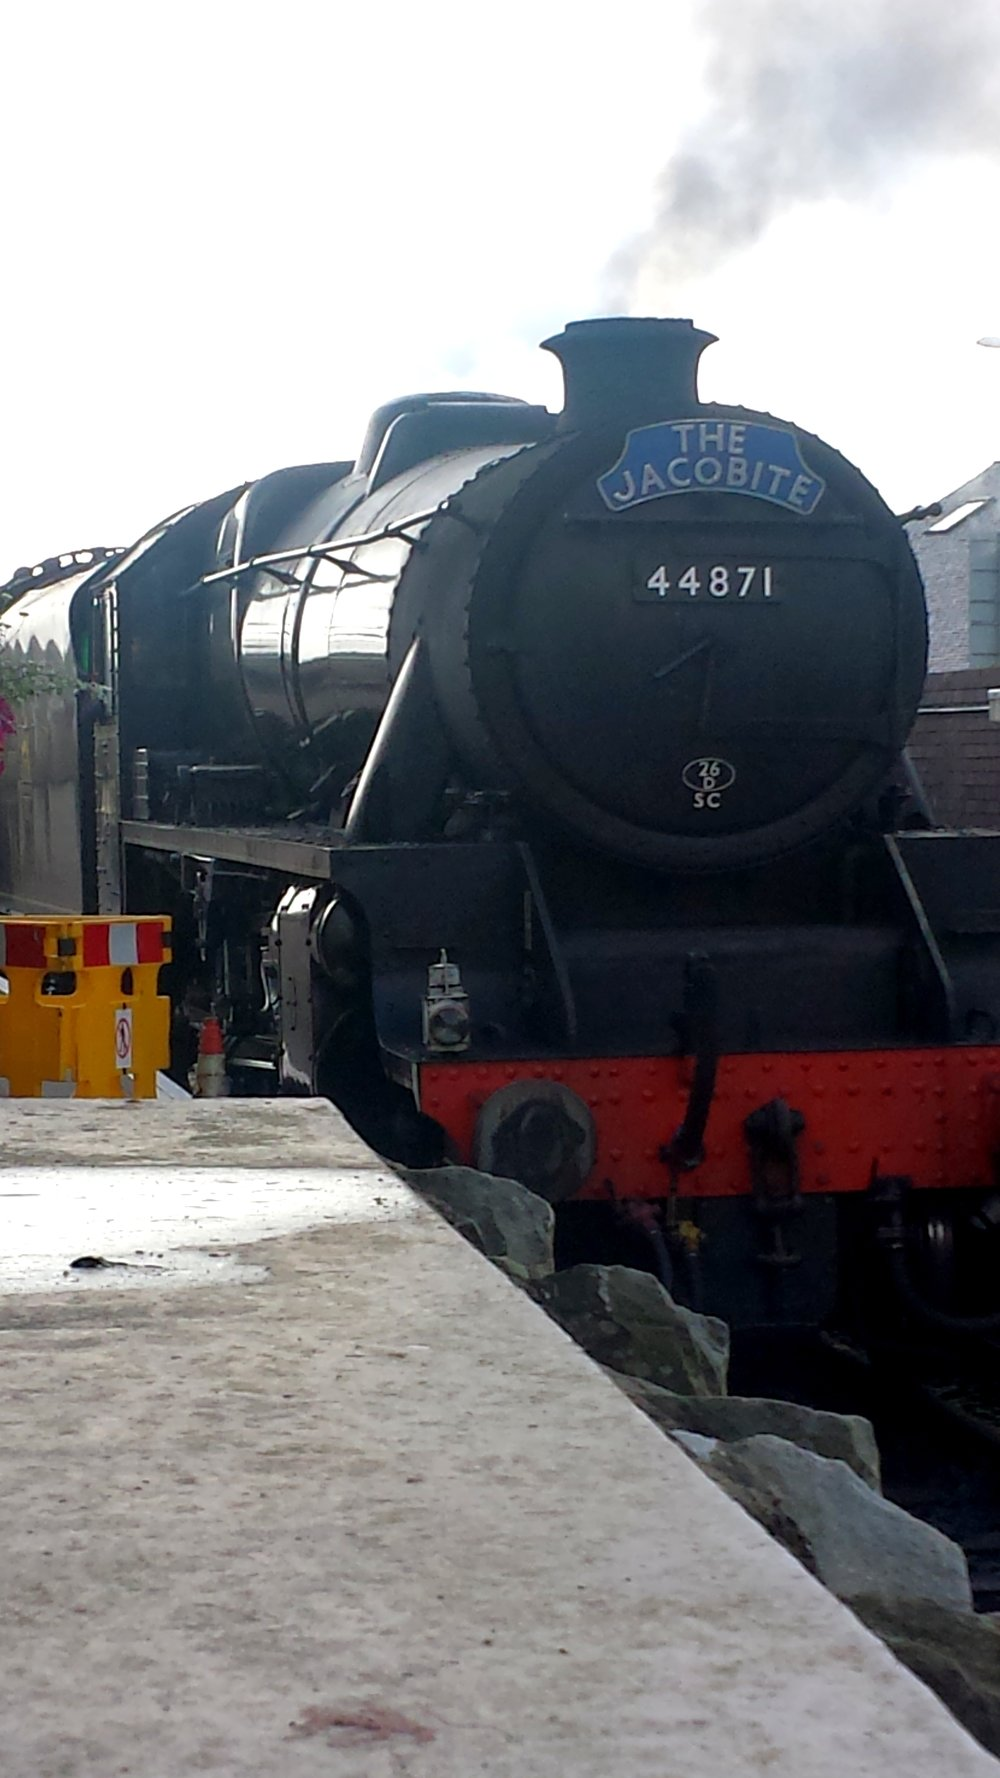 20160902_164956 jacobite train in Mallaig.jpg